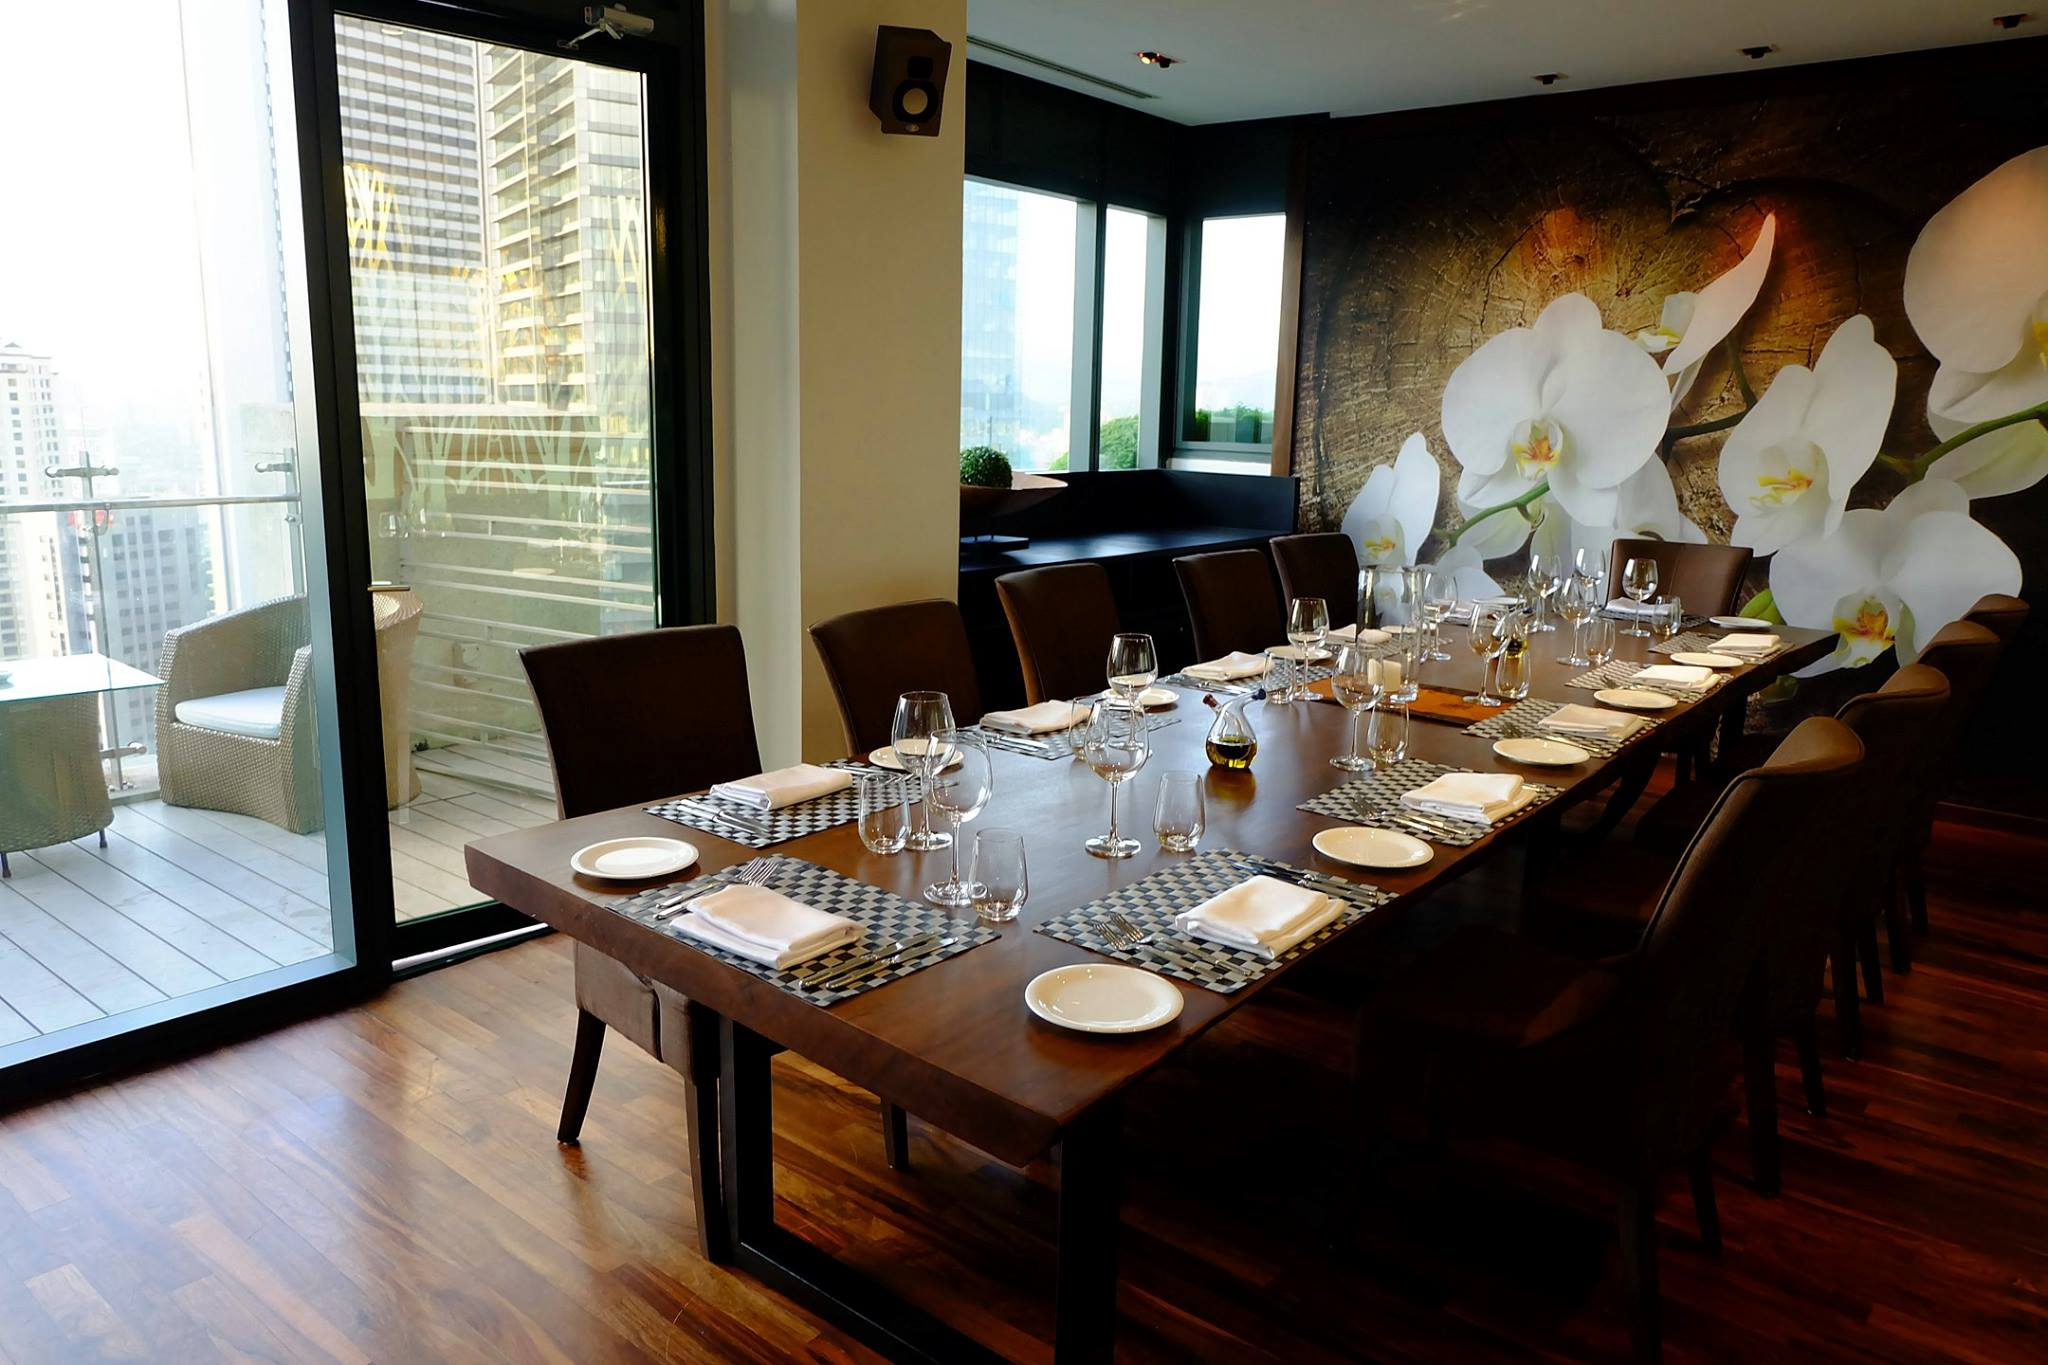 Romantic dining restaurants tanzini at g tower timchew